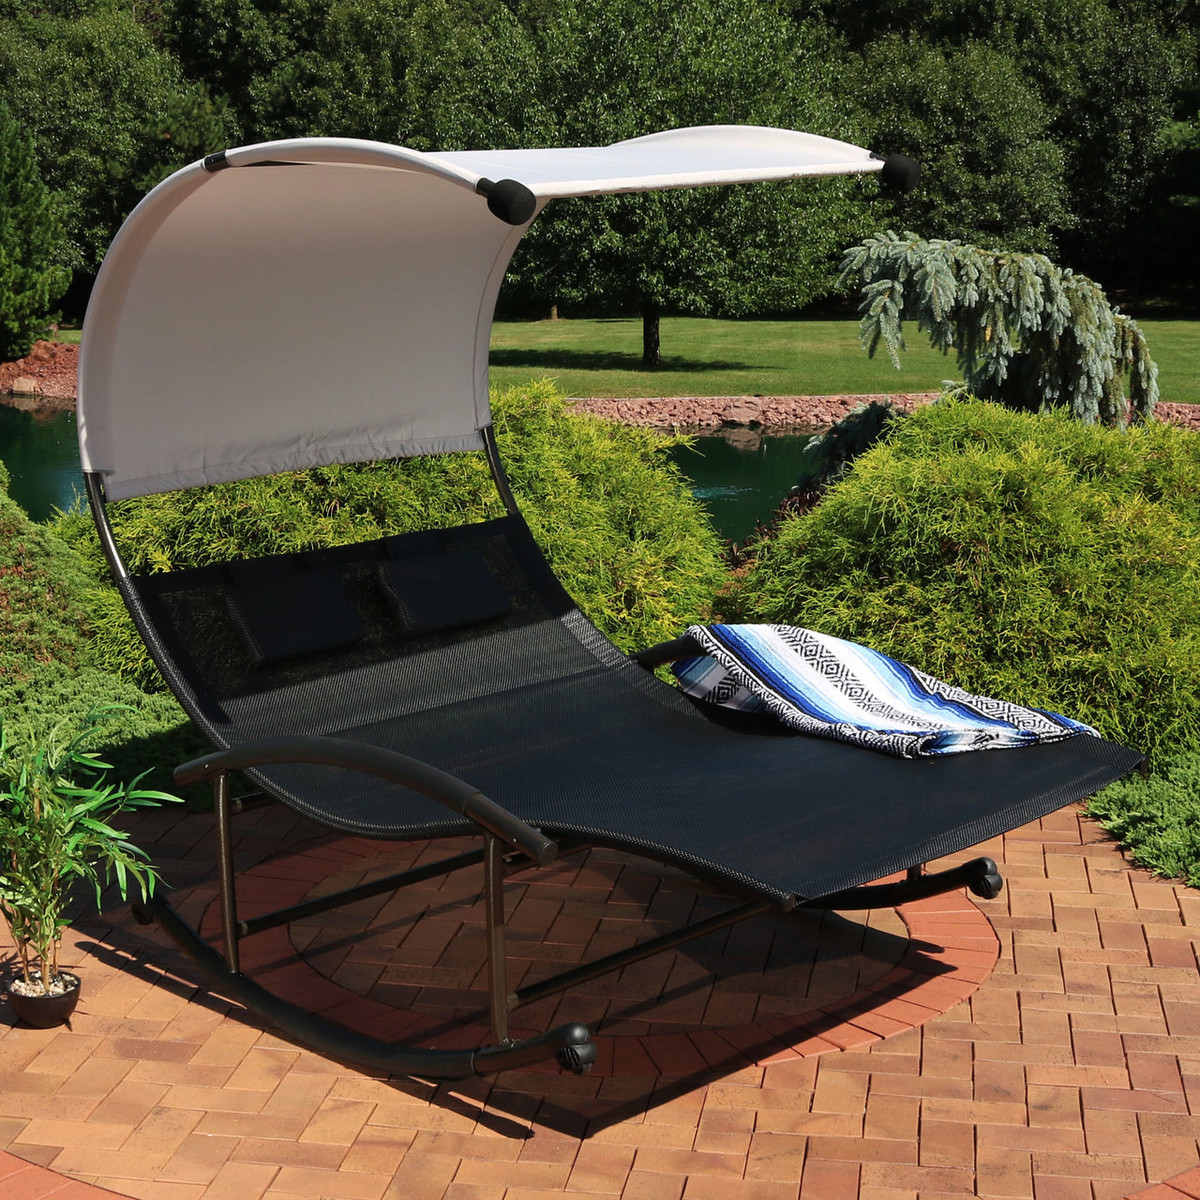 Tommy Bahama Outdoor Cushions, Sunnydaze Double Chaise Rocking Lounge Chair With Canopy And Headrest Pillows Black